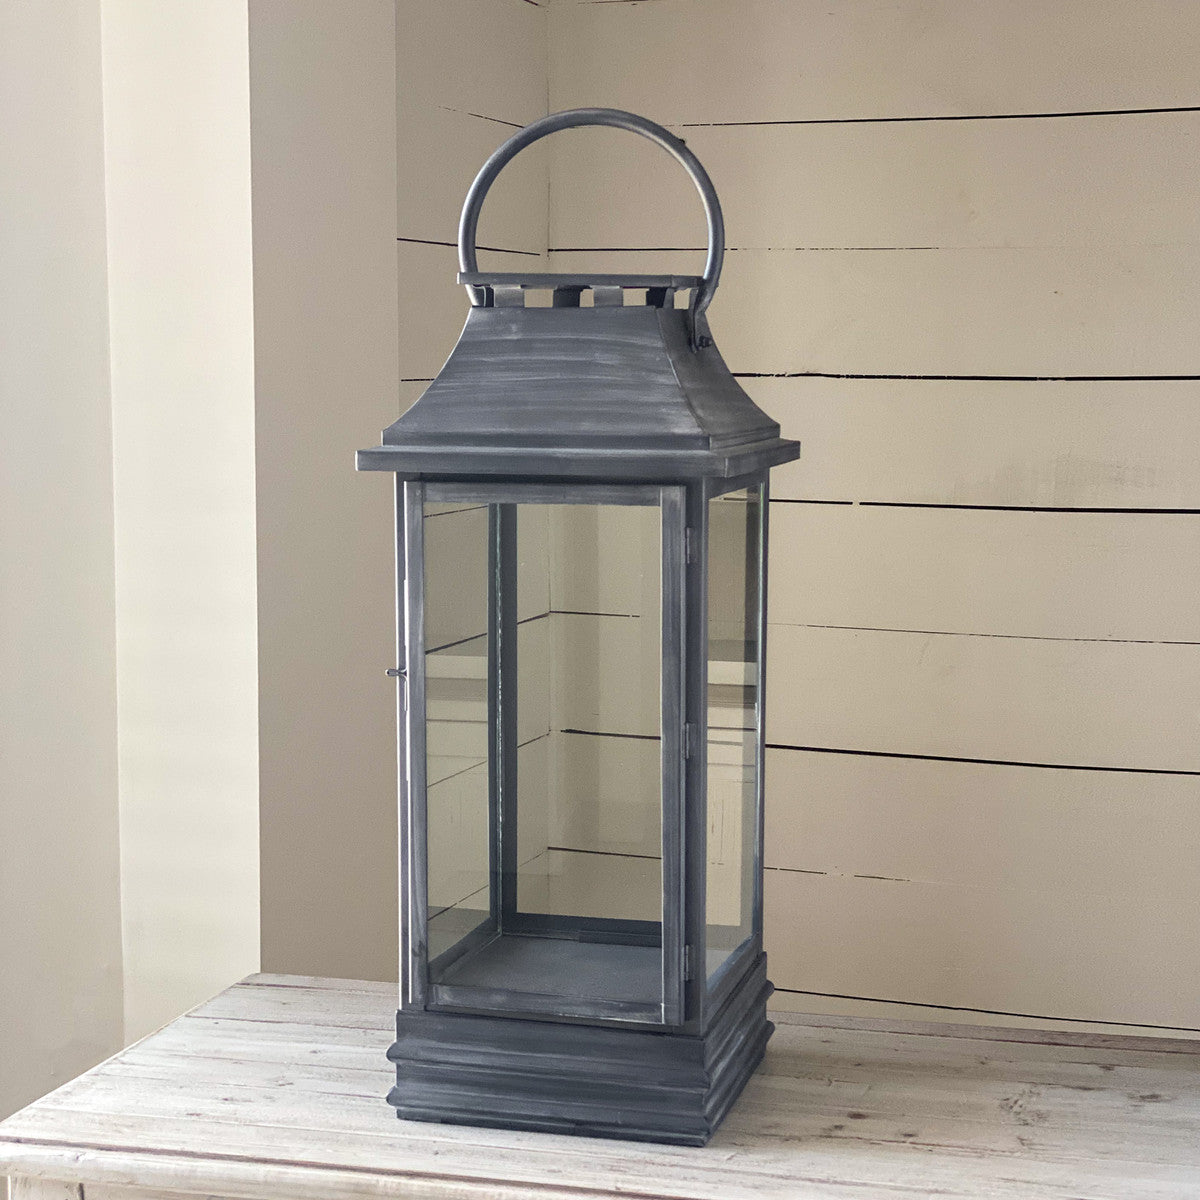 Chester Antique Black Lantern